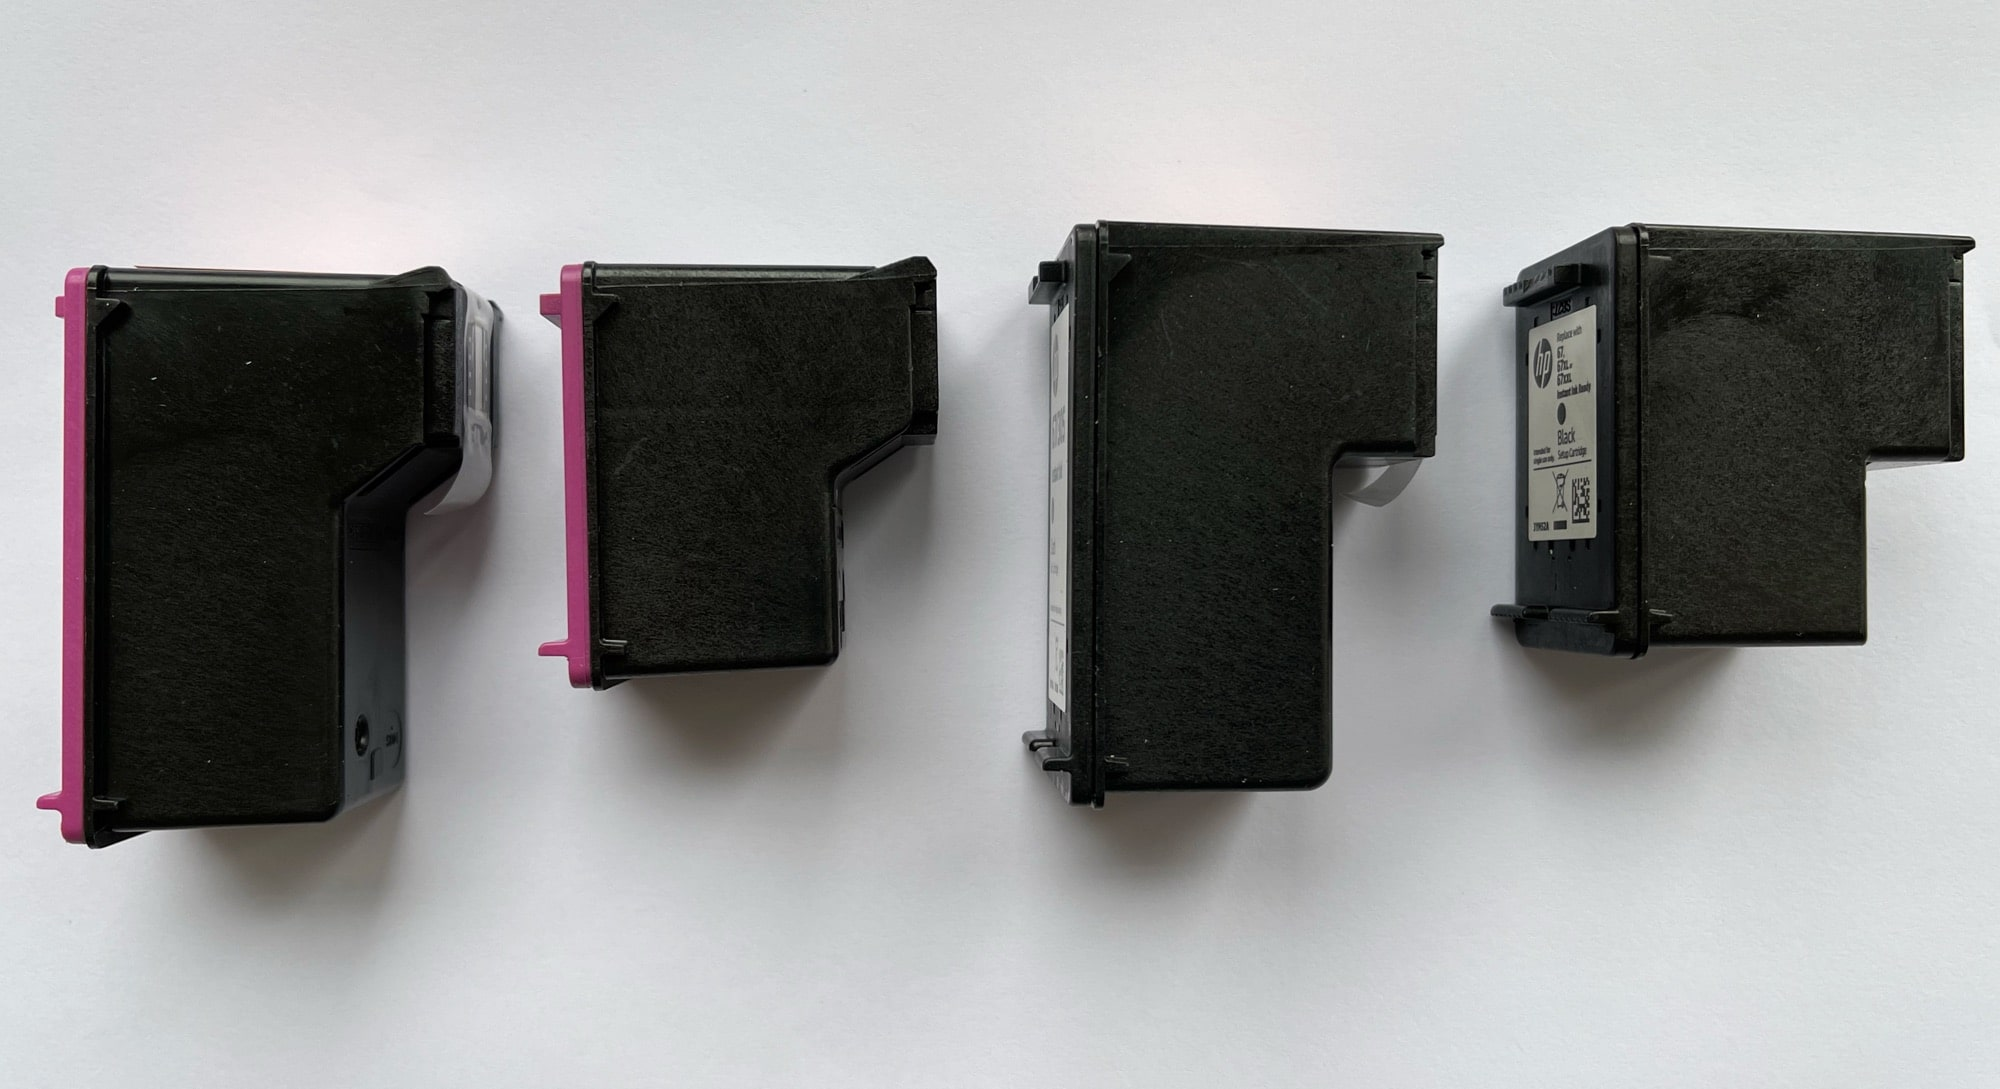 HP Instant Ink cartridges are very large, versus the smaller cartridges that come with the printer.